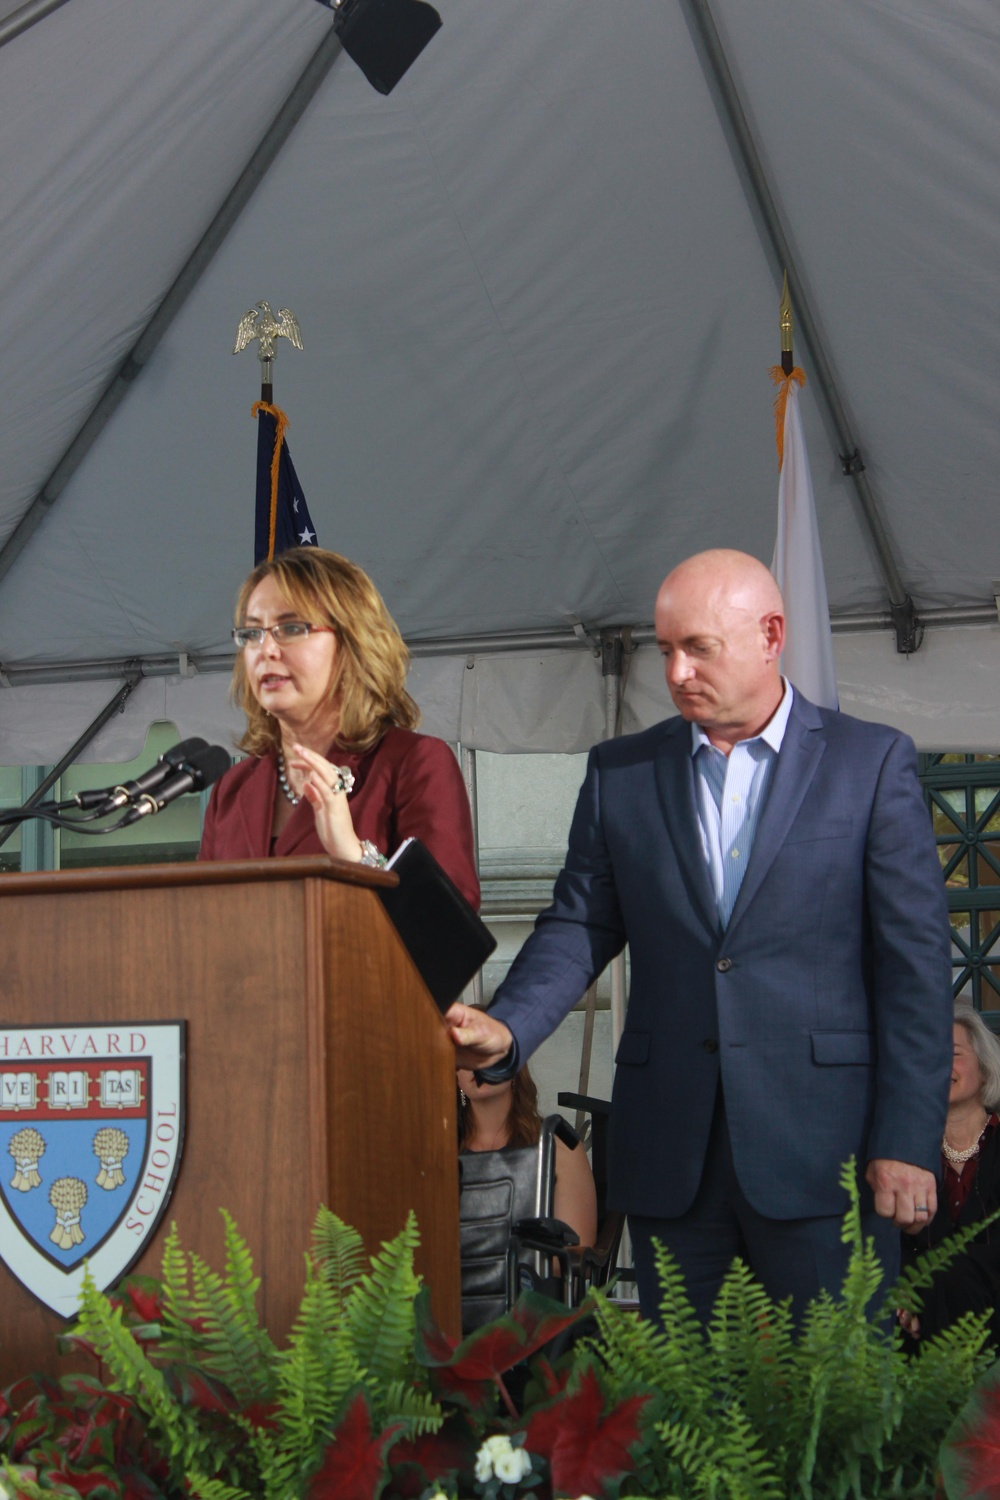 Former U.S. Representative Gabrielle D. Giffords and her husband, Mark E. Kelly, speak at Harvard Law School's Class Day.